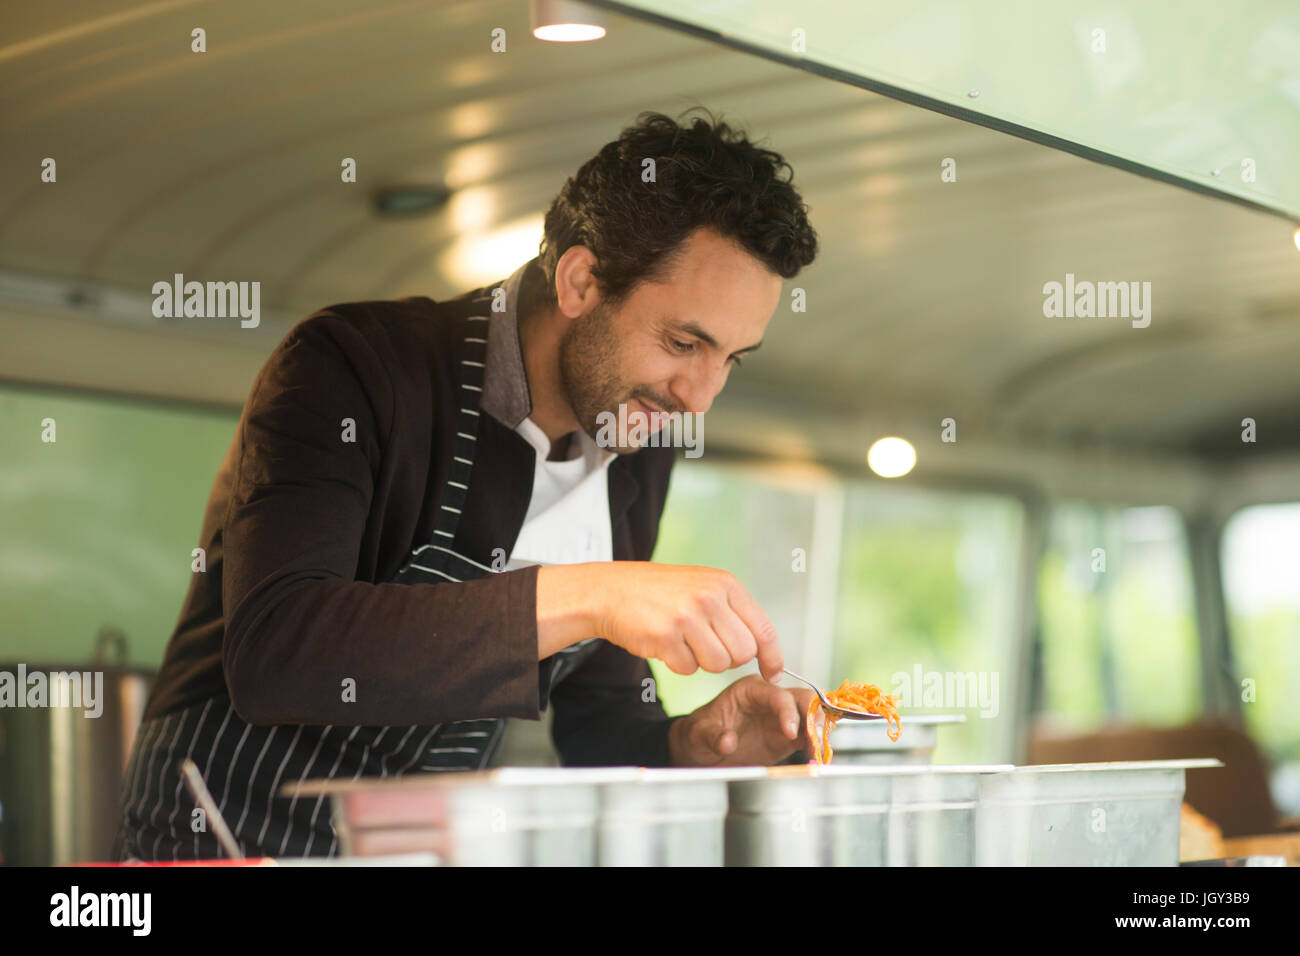 Small business owner serving food from van food stall hatch - Stock Image